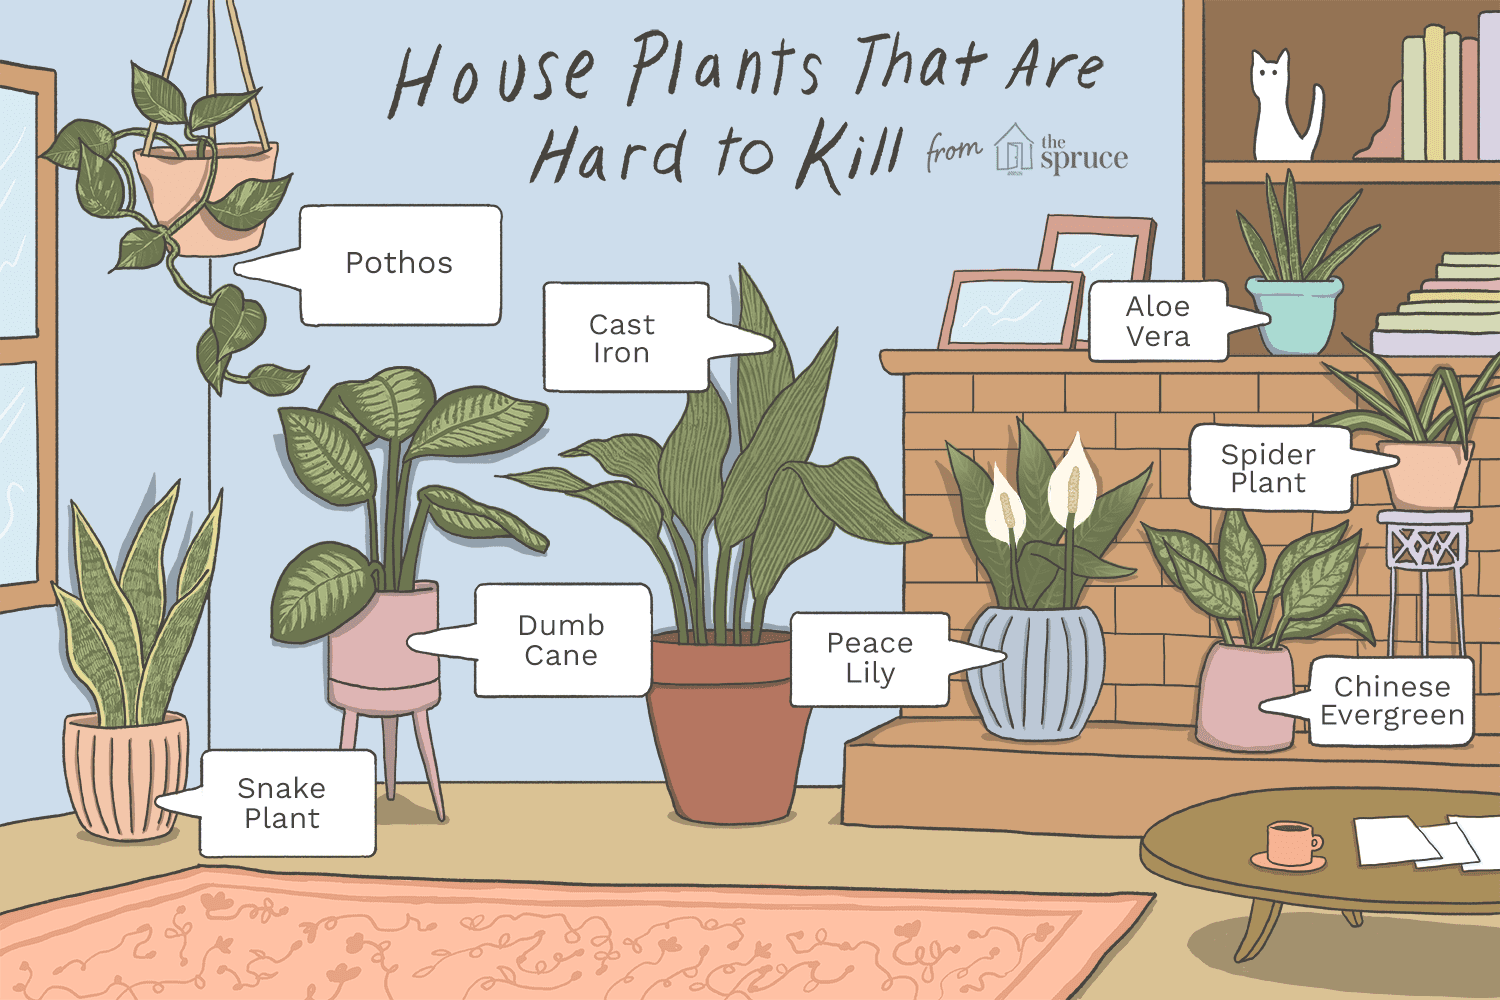 6 Houseplants Anyone Can Grow on colorful house plants, non-toxic house plants, small house plants, soothing house plants, robust house plants, weather proof house plants, hypoallergenic house plants, fragrant house plants, lightweight house plants, compact house plants, organic house plants, portable house plants, rugged house plants, elegant house plants, night blooming house plants, refreshing house plants, cool looking house plants, inexpensive house plants, strong house plants, easy to maintain house plants,